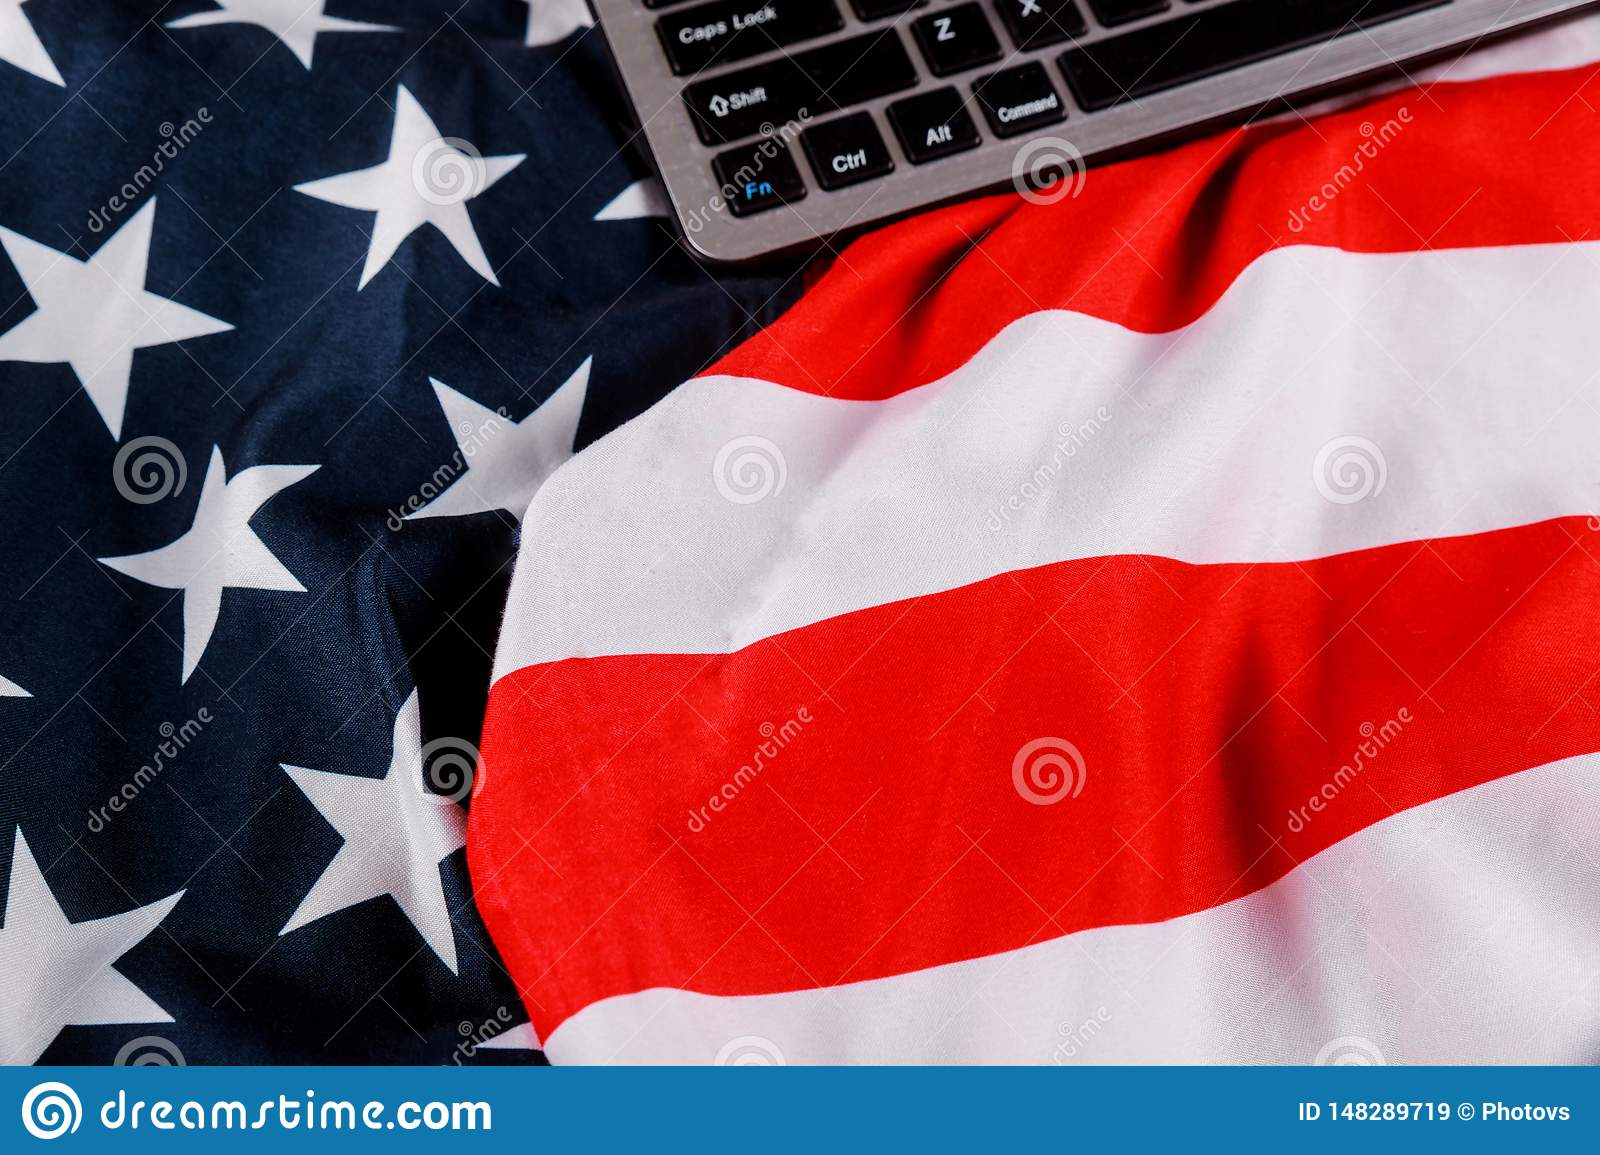 Keyboard with blank notepad with office table american flag